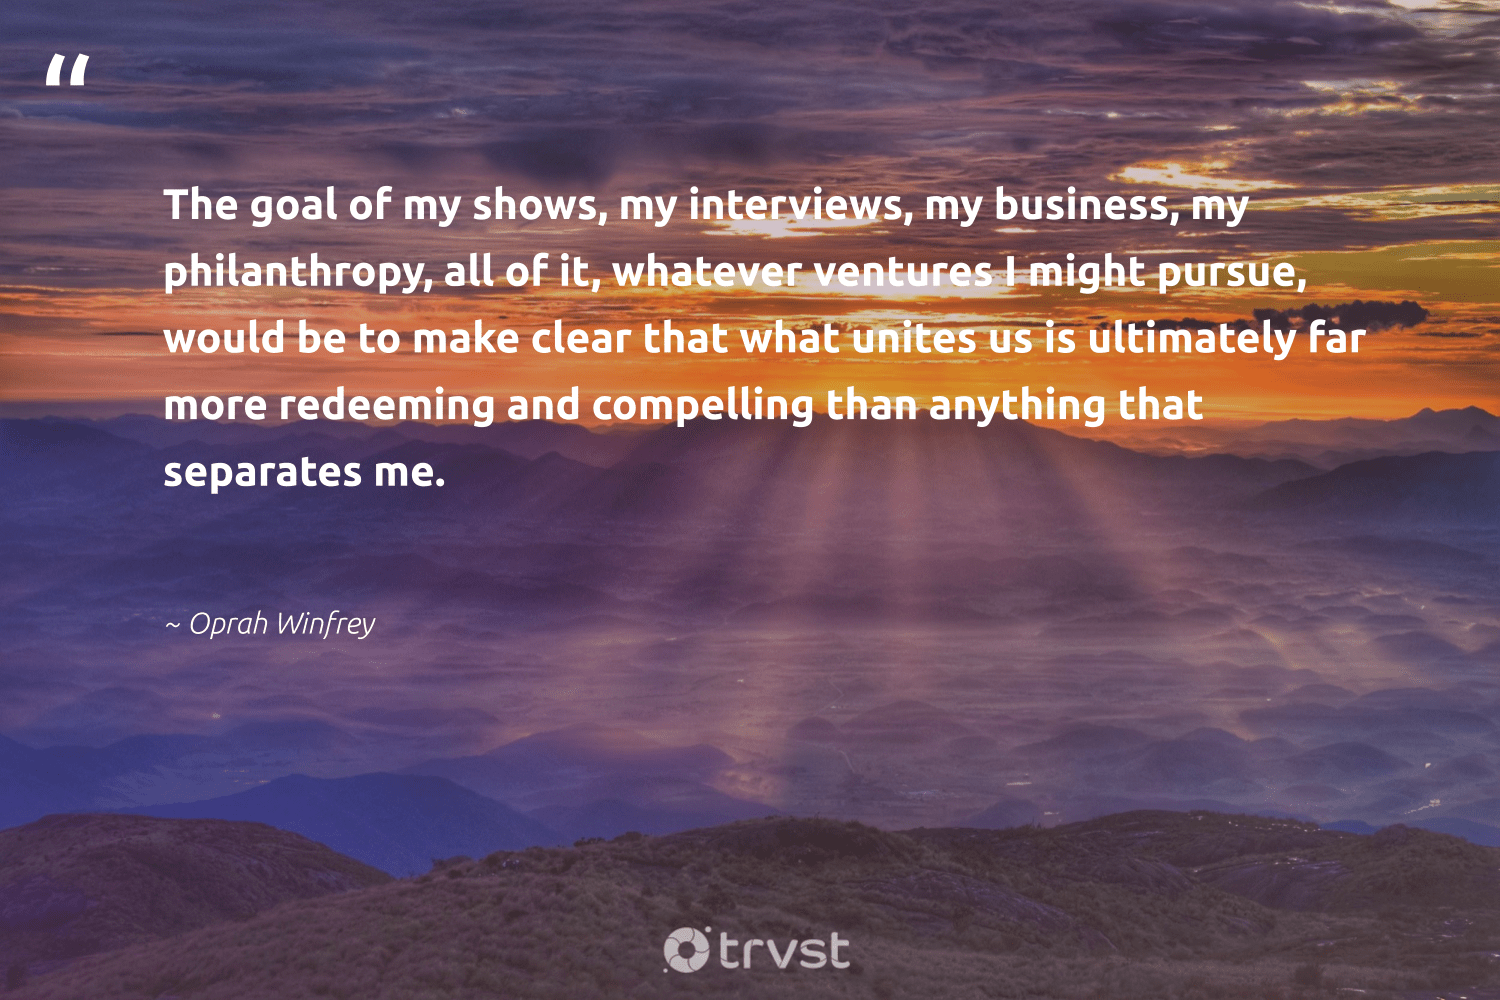 """The goal of my shows, my interviews, my business, my philanthropy, all of it, whatever ventures I might pursue, would be to make clear that what unites us is ultimately far more redeeming and compelling than anything that separates me.""  - Oprah Winfrey #trvst #quotes #philanthropy #philanthropic #changemakers #togetherwecan #thinkgreen #giveforthefuture #itscooltobekind #bethechange #socialchange #dogood"